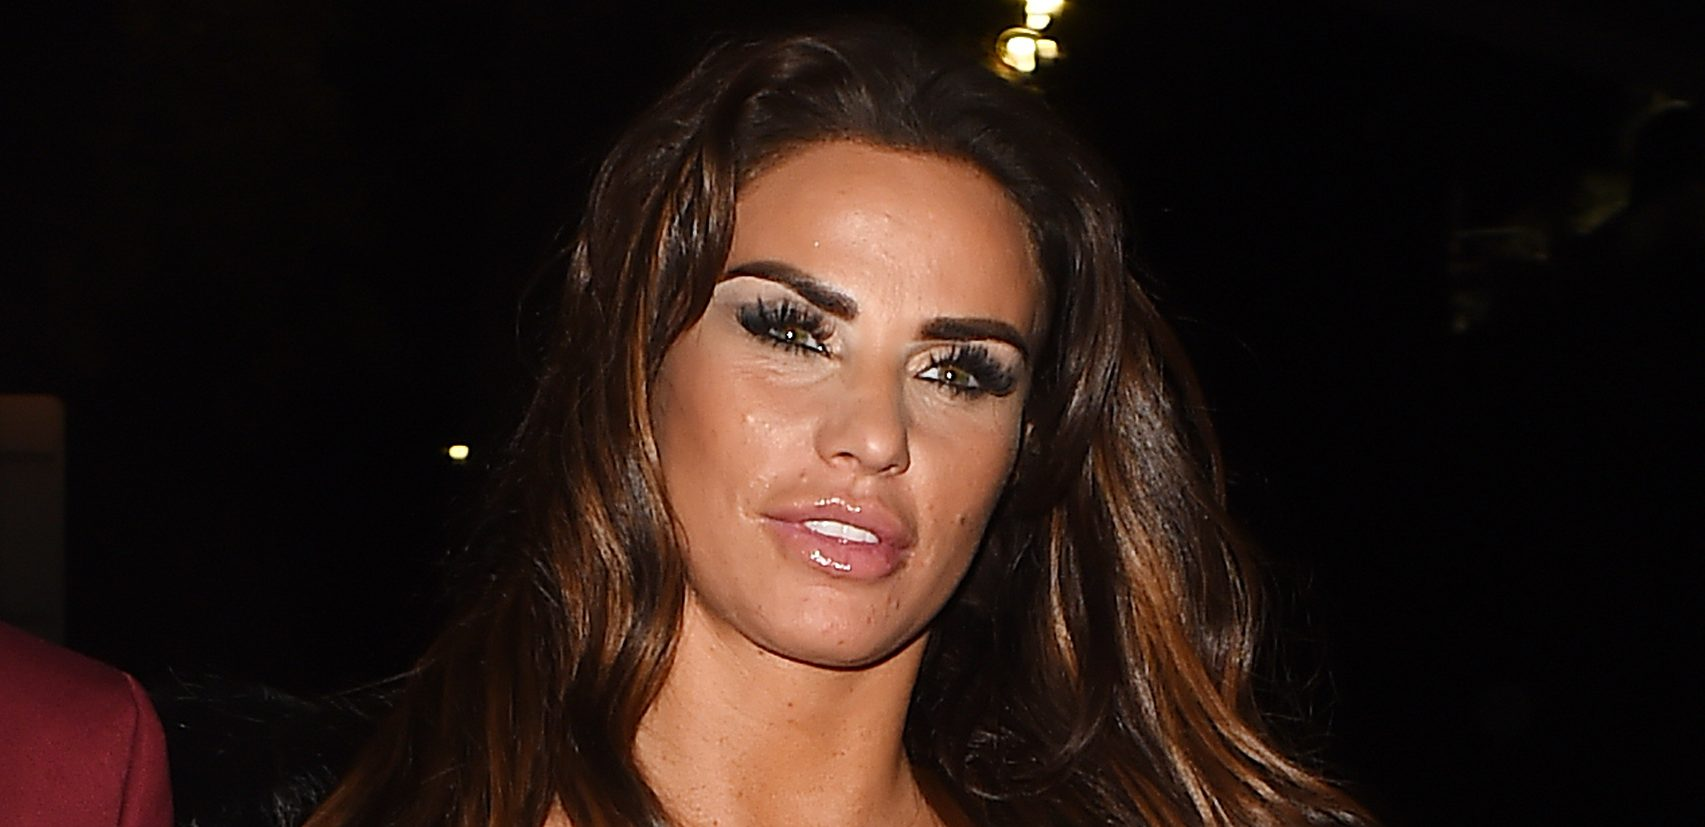 Katie Price is 'flying home for a showdown with Kris' after she 'cheated' with builder